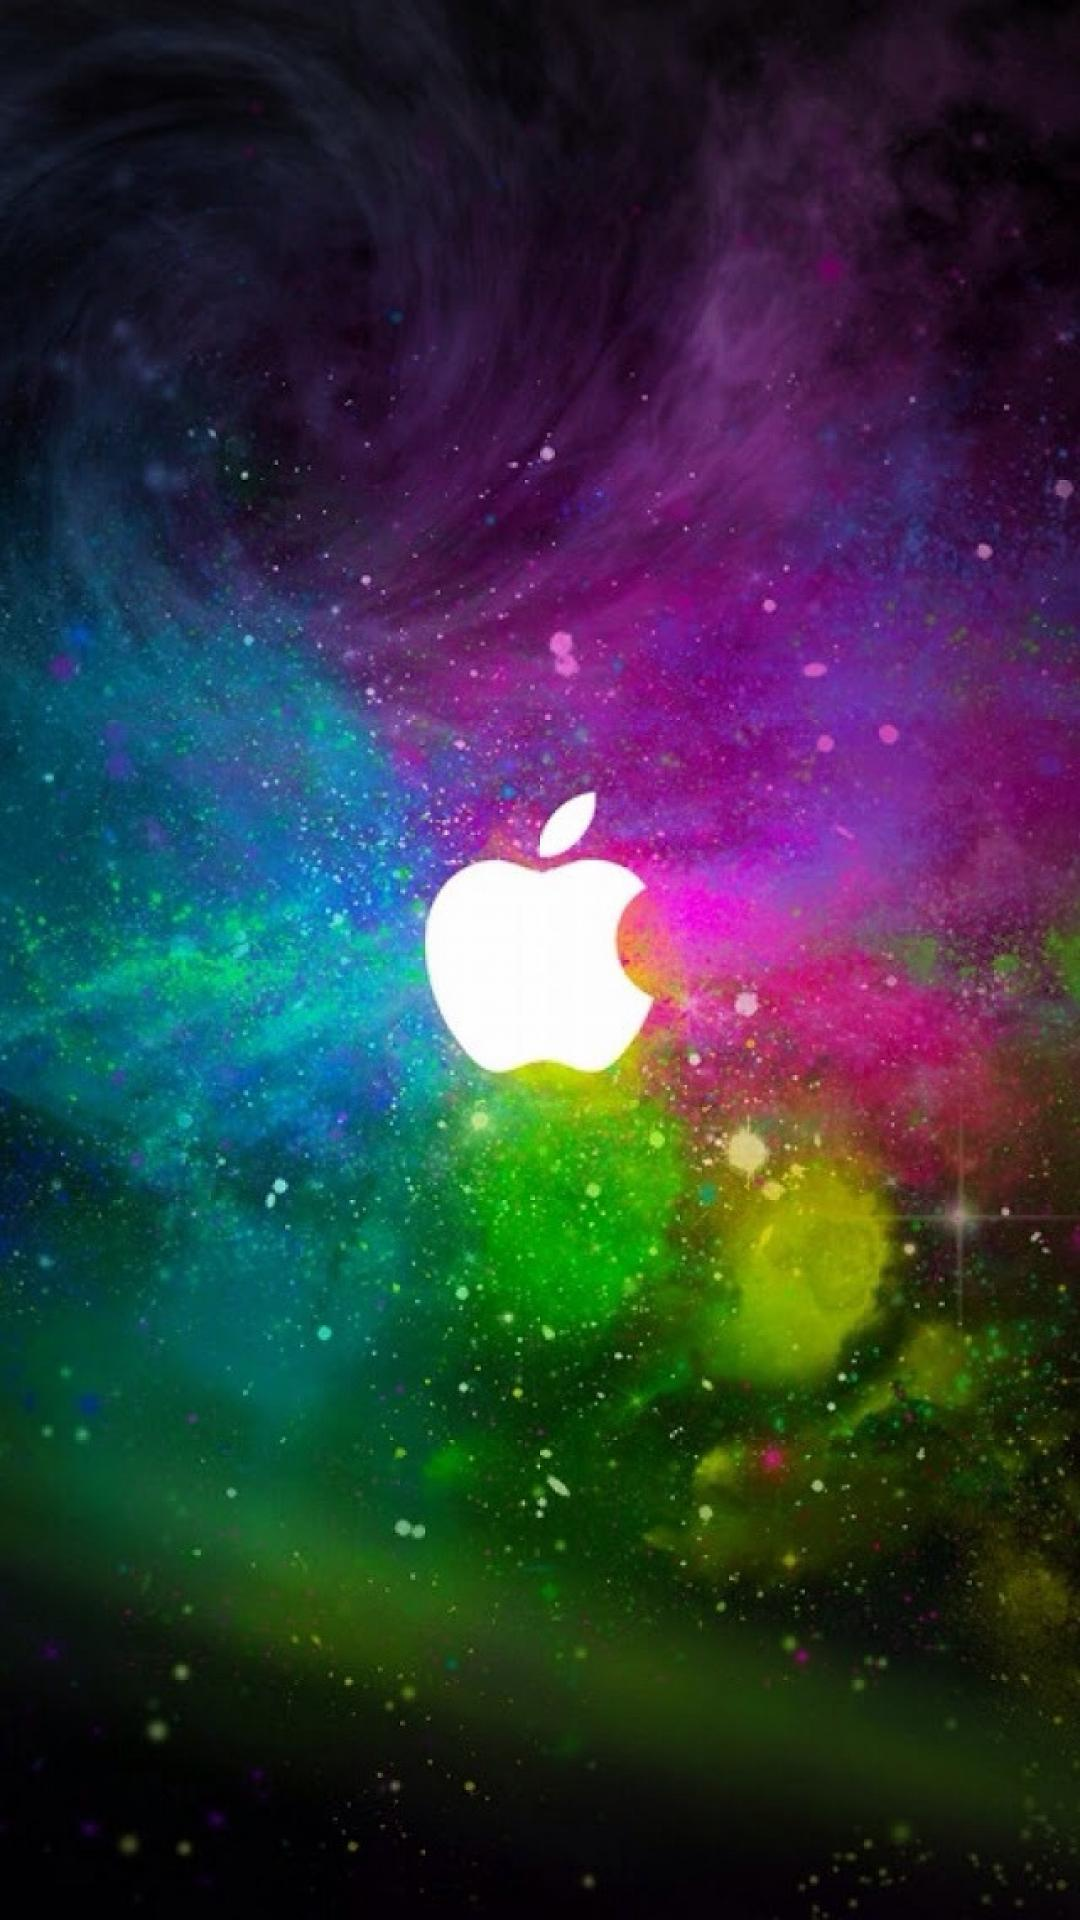 How to Get Wallpapers on Your iPhone or iPod Touch: 4 Steps